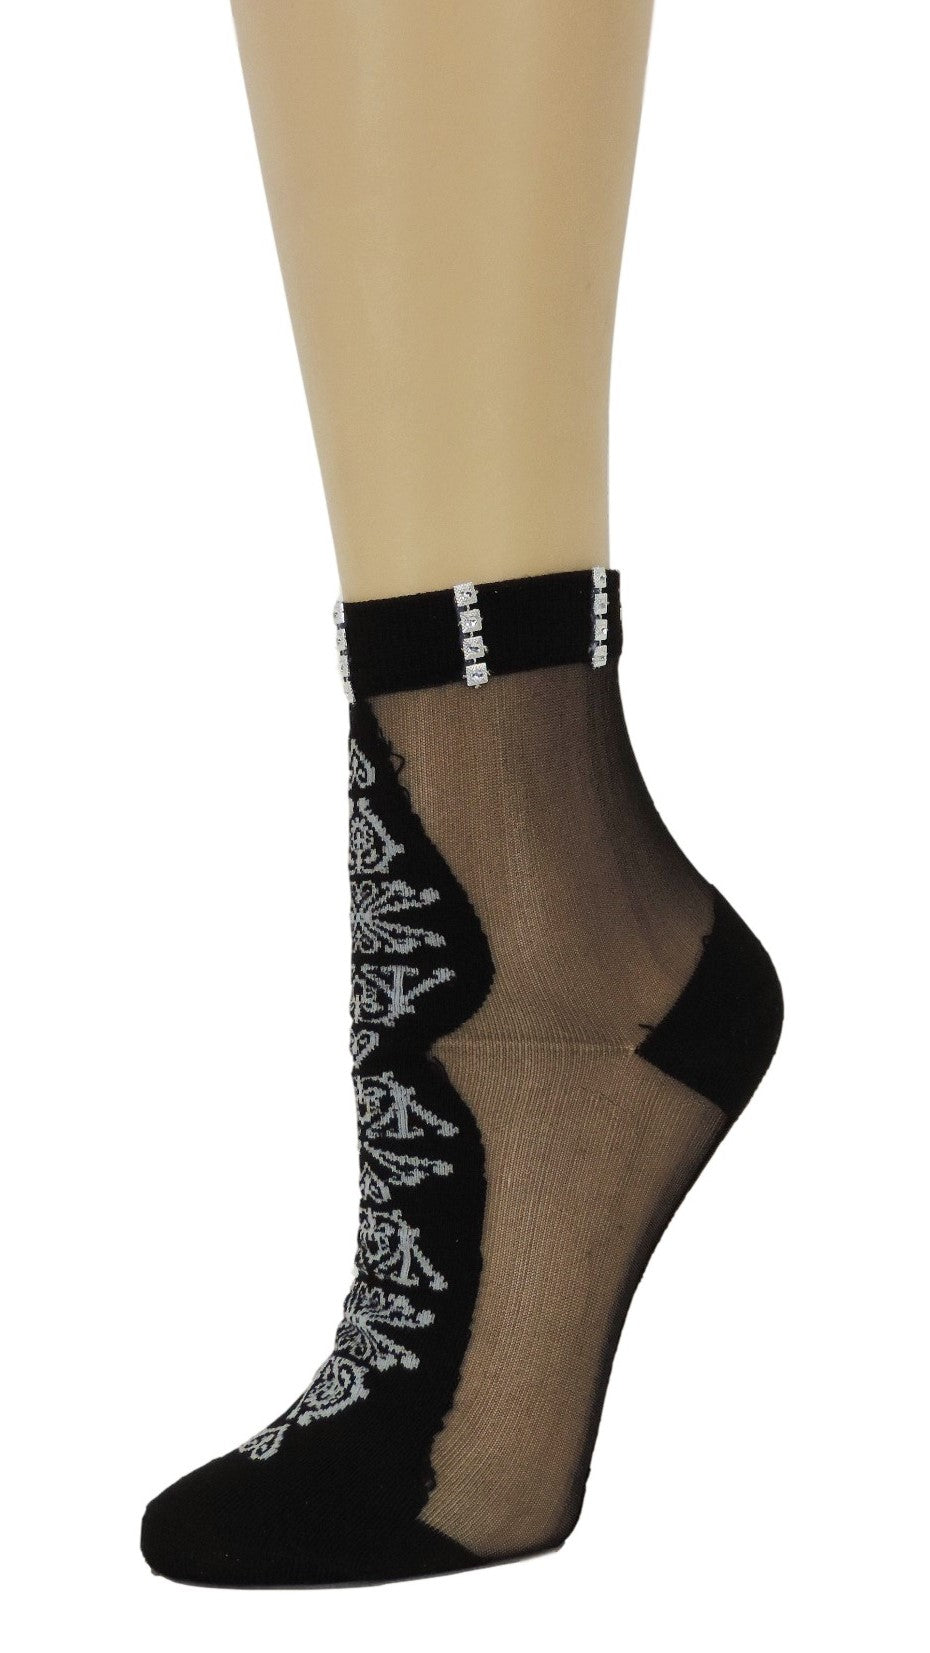 Supreme Black Custom Sheer Socks with crystals - Global Trendz Fashion®